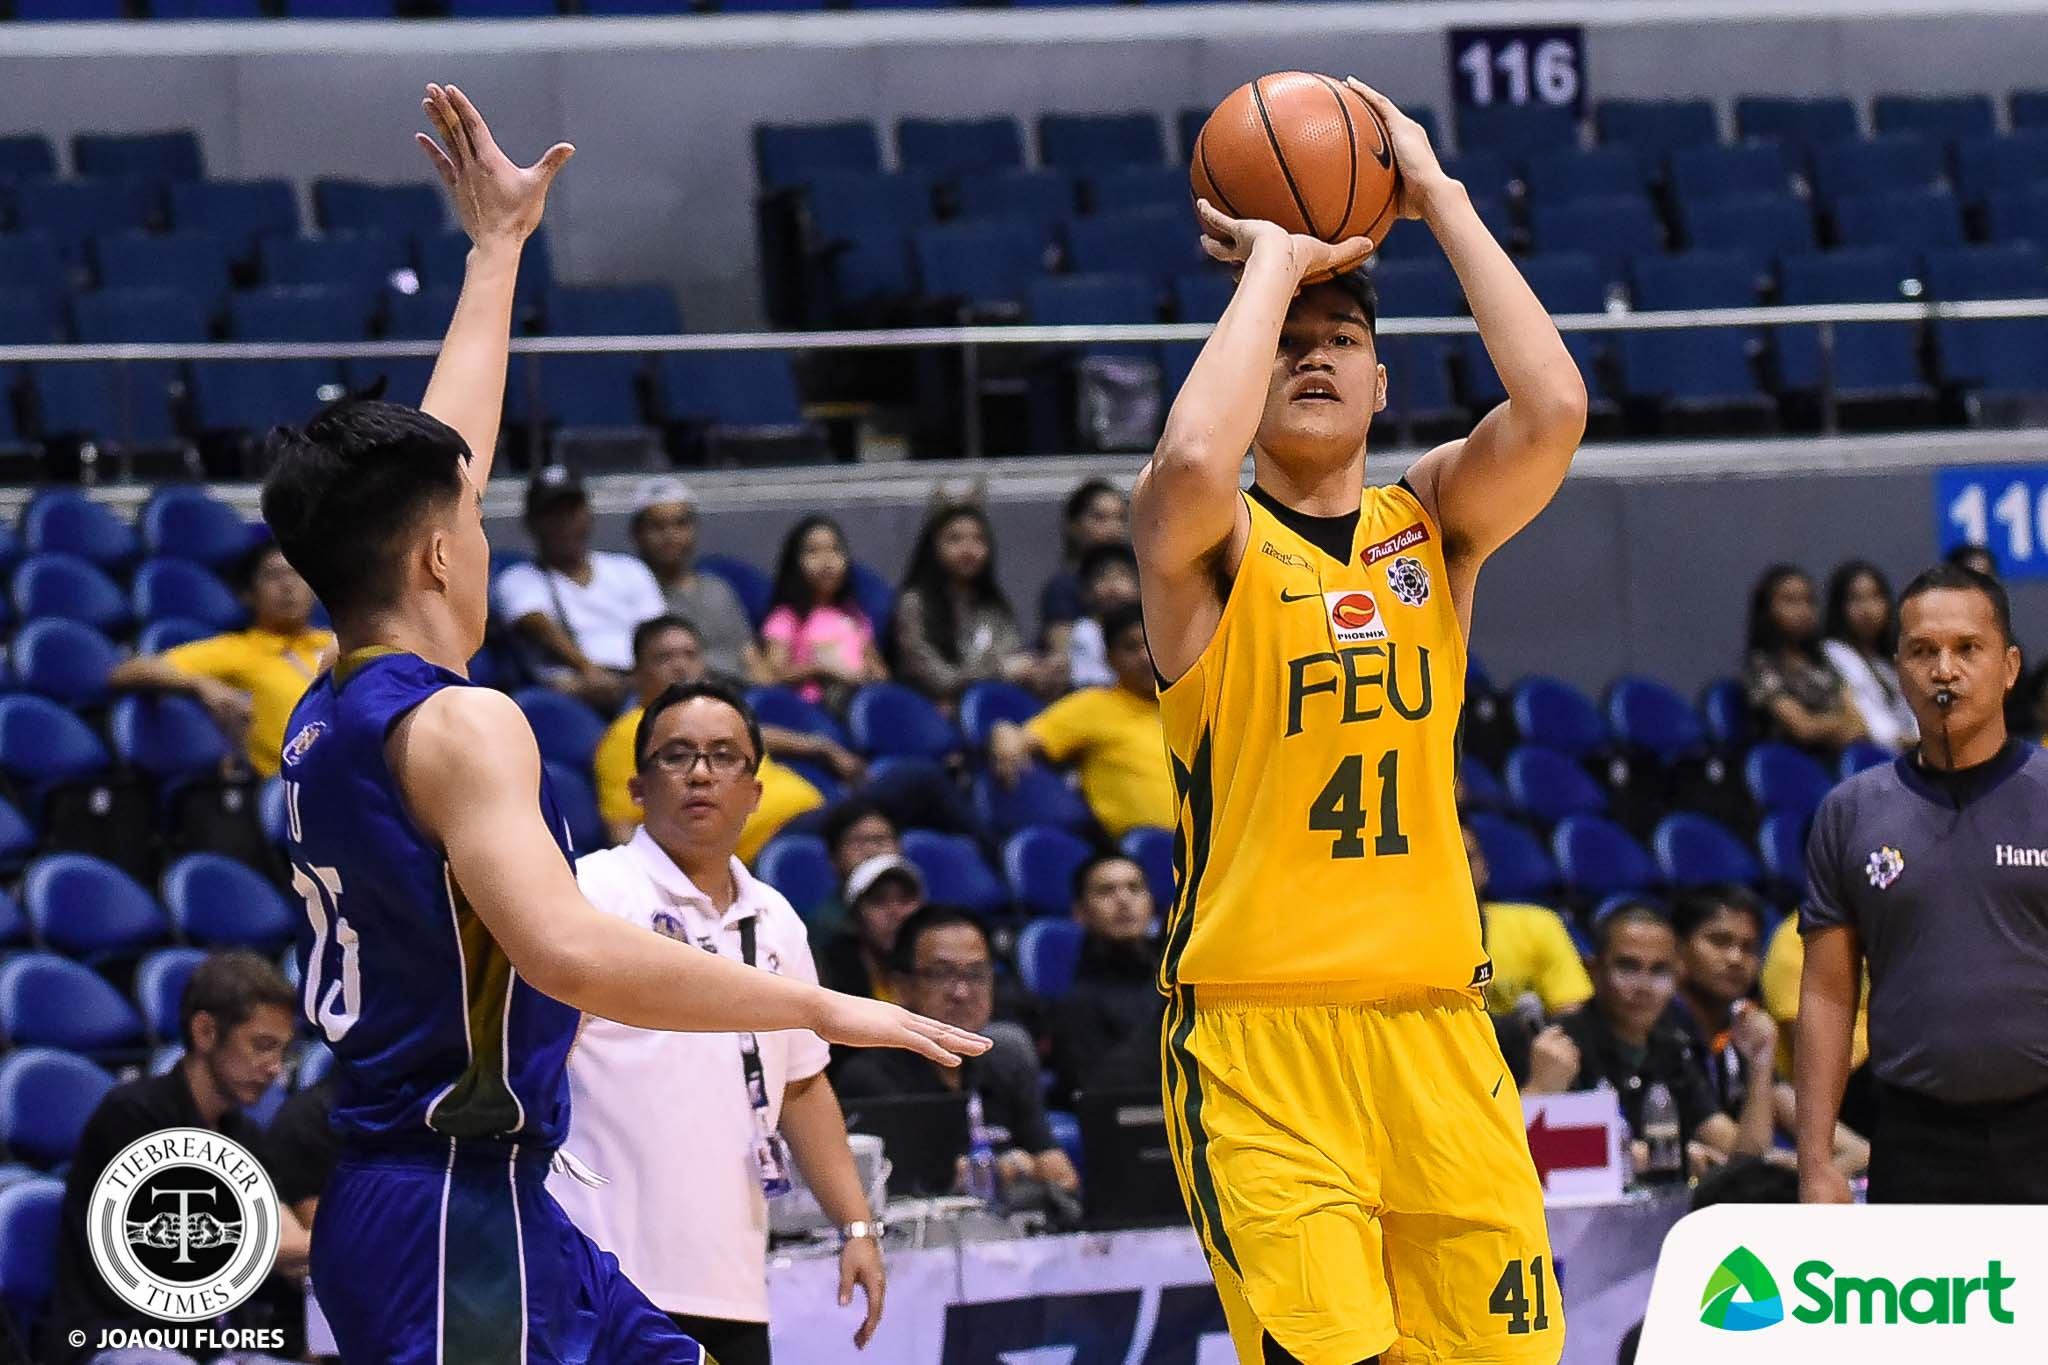 Tiebreaker Times FEU weathers John Lloyd Clemente's season-high explosion to keep pace with UP Basketball FEU News NU UAAP  UAAP Season 81 Men's Basketball UAAP Season 81 Olsen Racela NU Men's Basketball Kenneth Tuffin John Lloyd Clemente Jamike Jarin FEU Men's Basketball Dave Ildefonso Arvin Tolentino